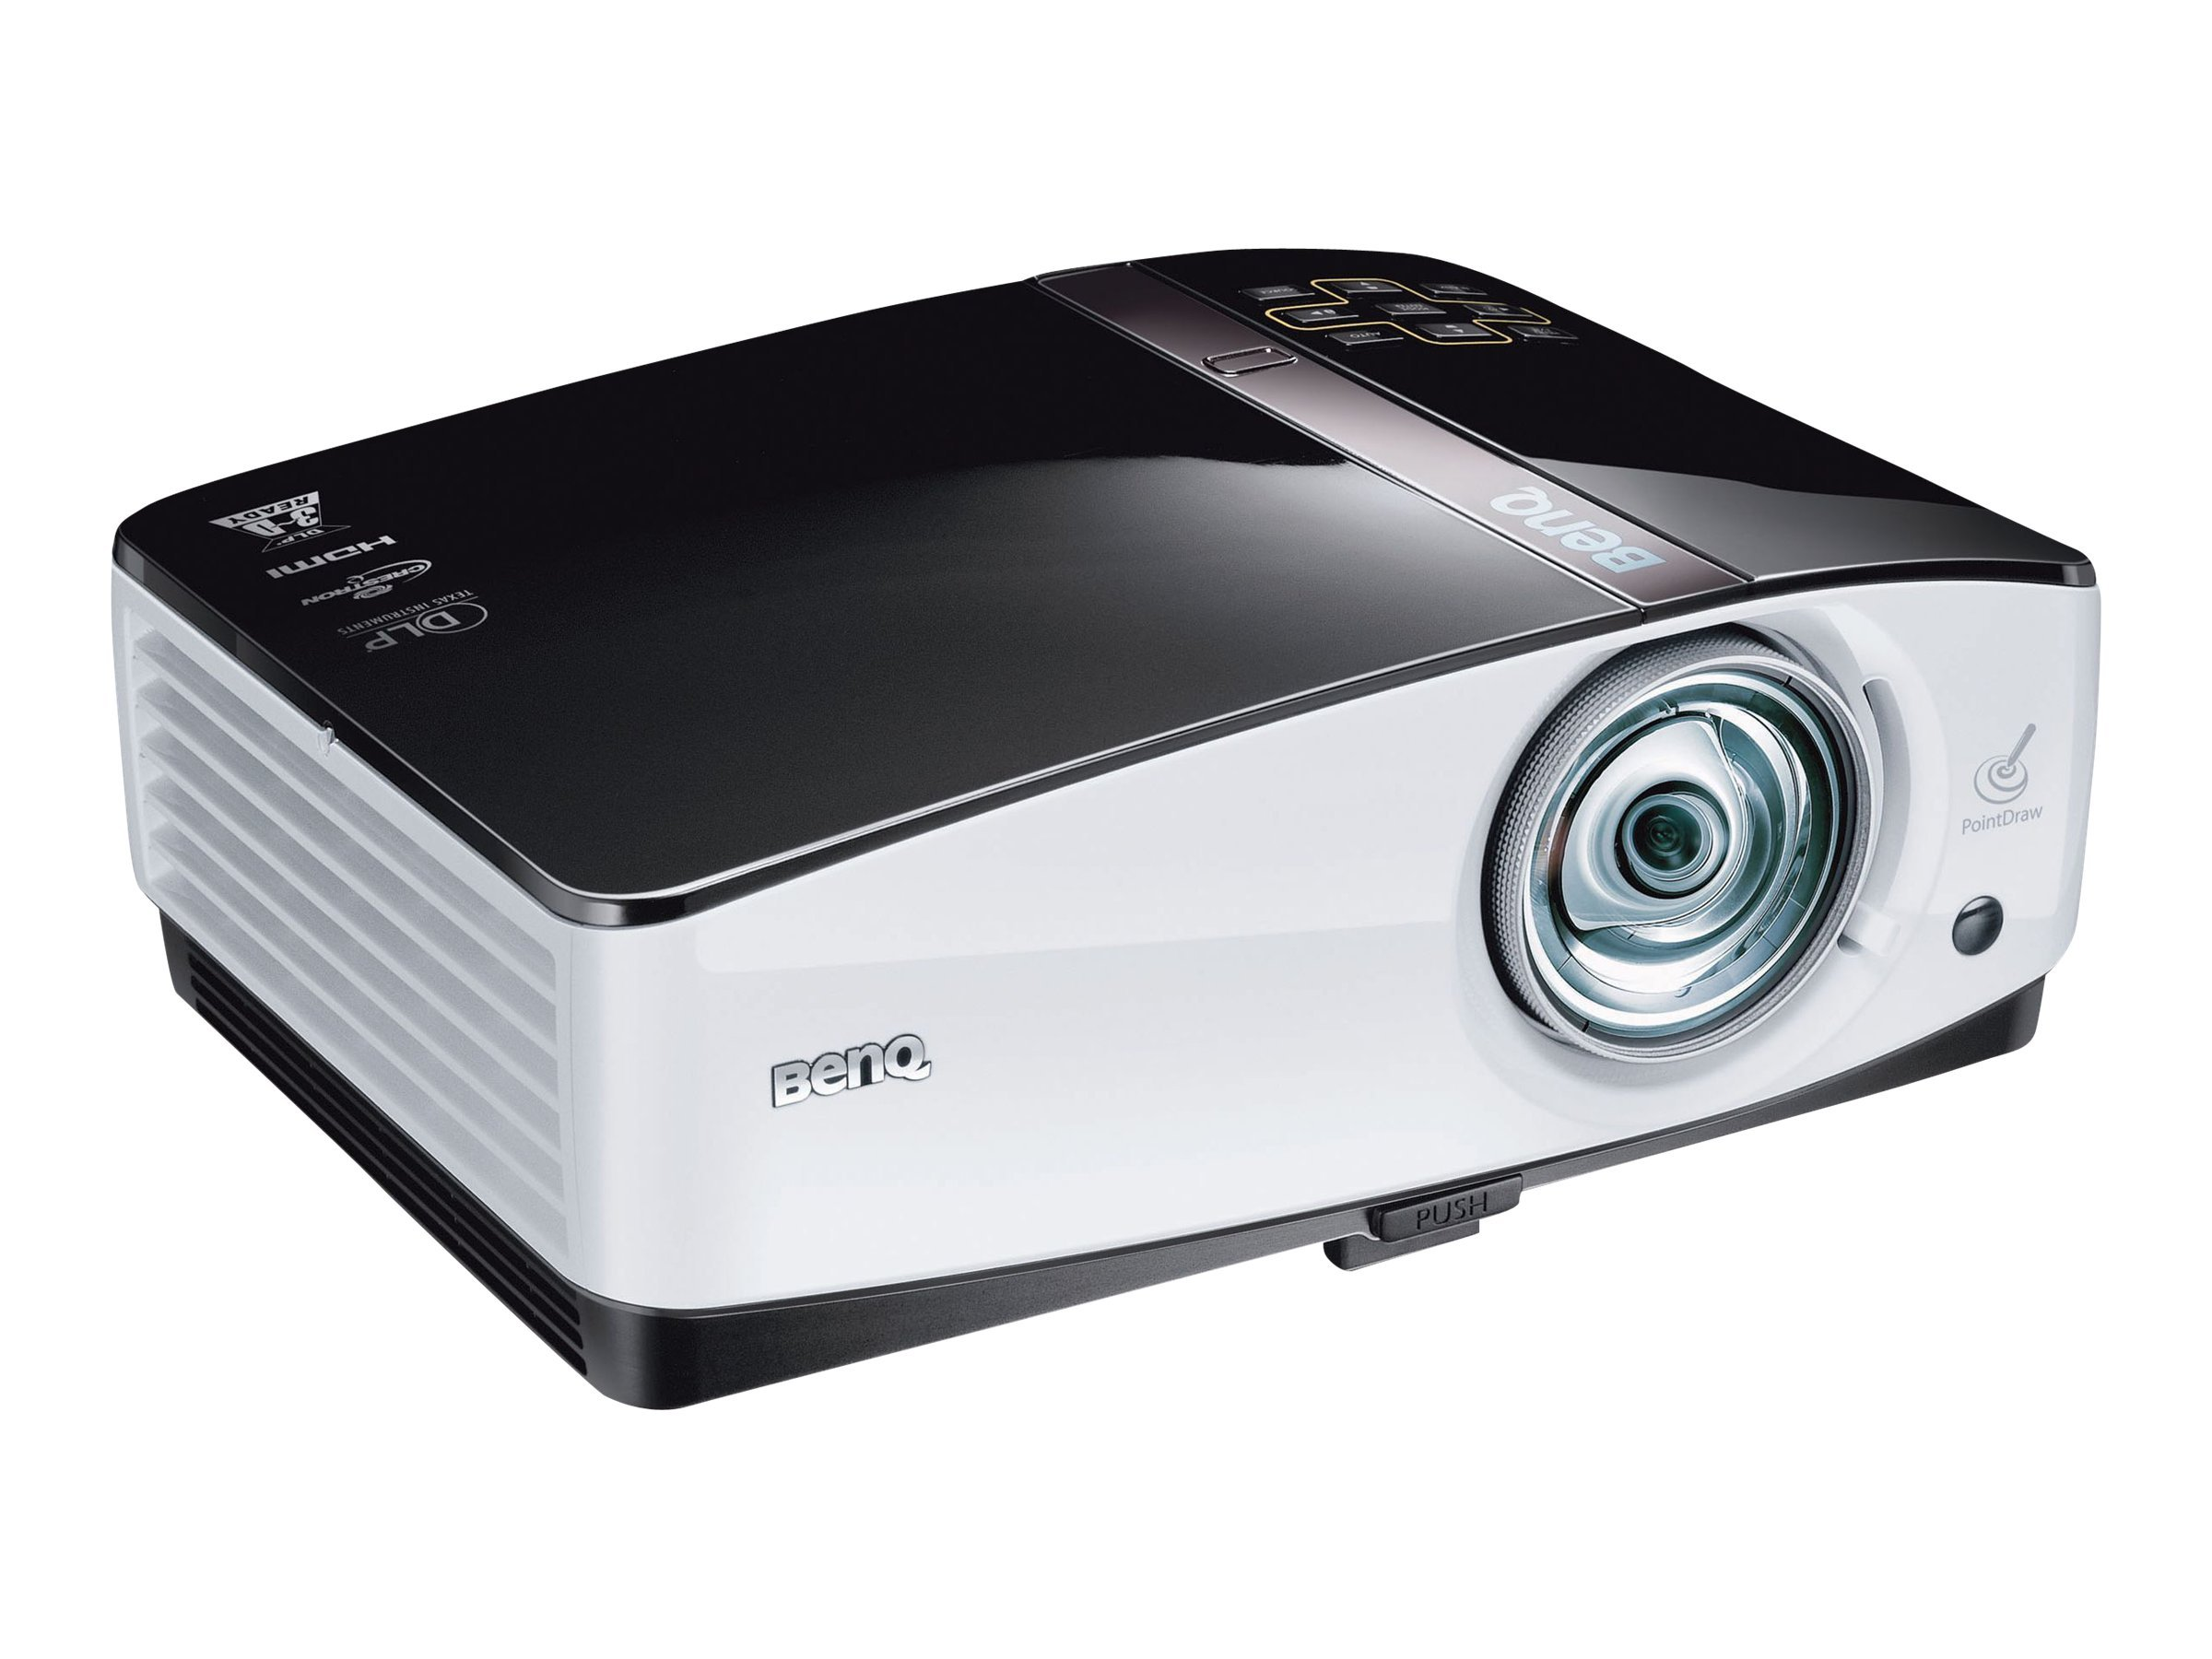 Benq MP780ST+ WXGA DLP Projector with Speakers, 2500 Lumen, MP780ST+, 14404436, Projectors